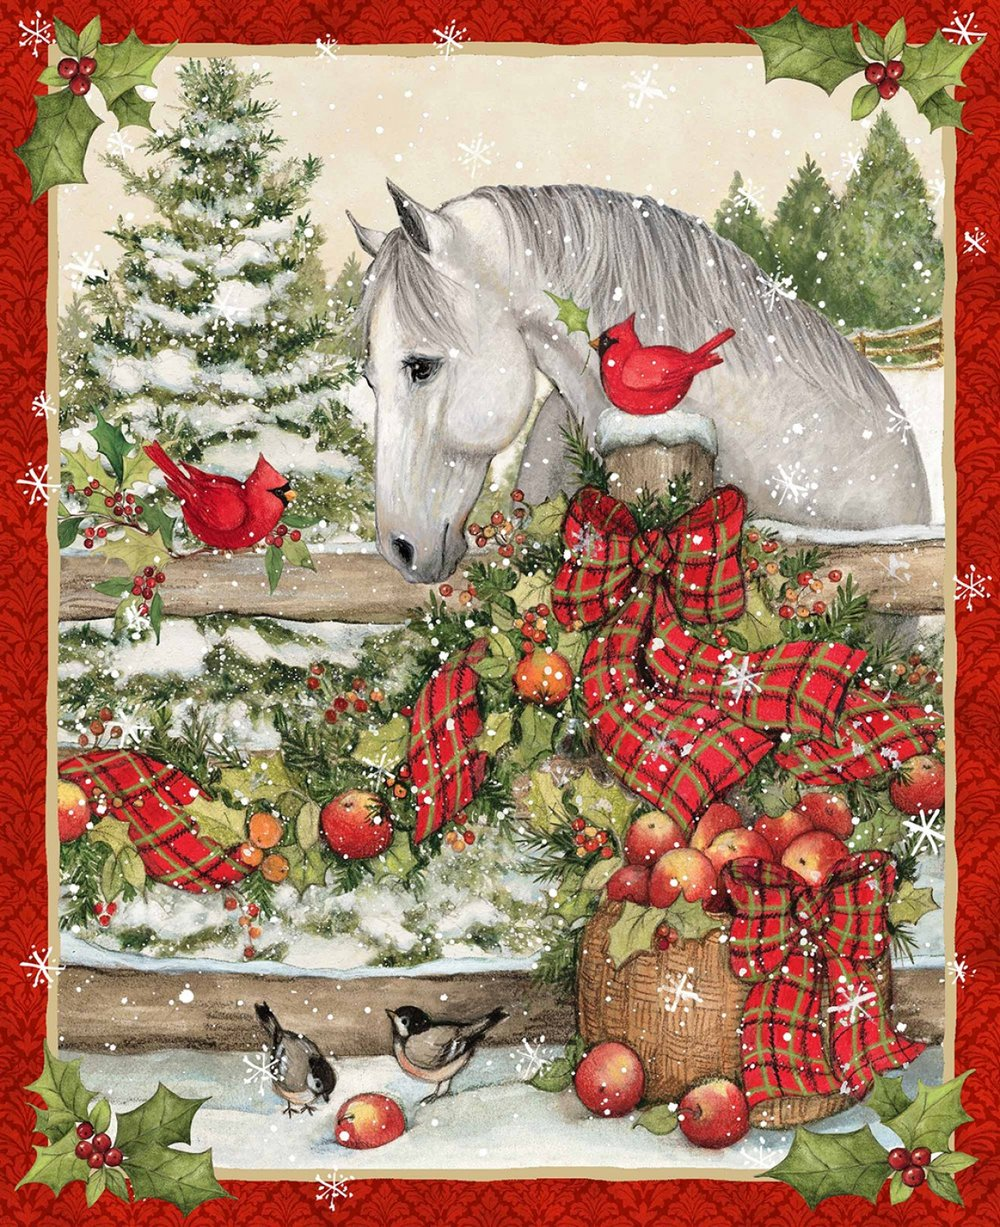 Christmas Horse with Red Plaid Bow Panel by Springs Creative